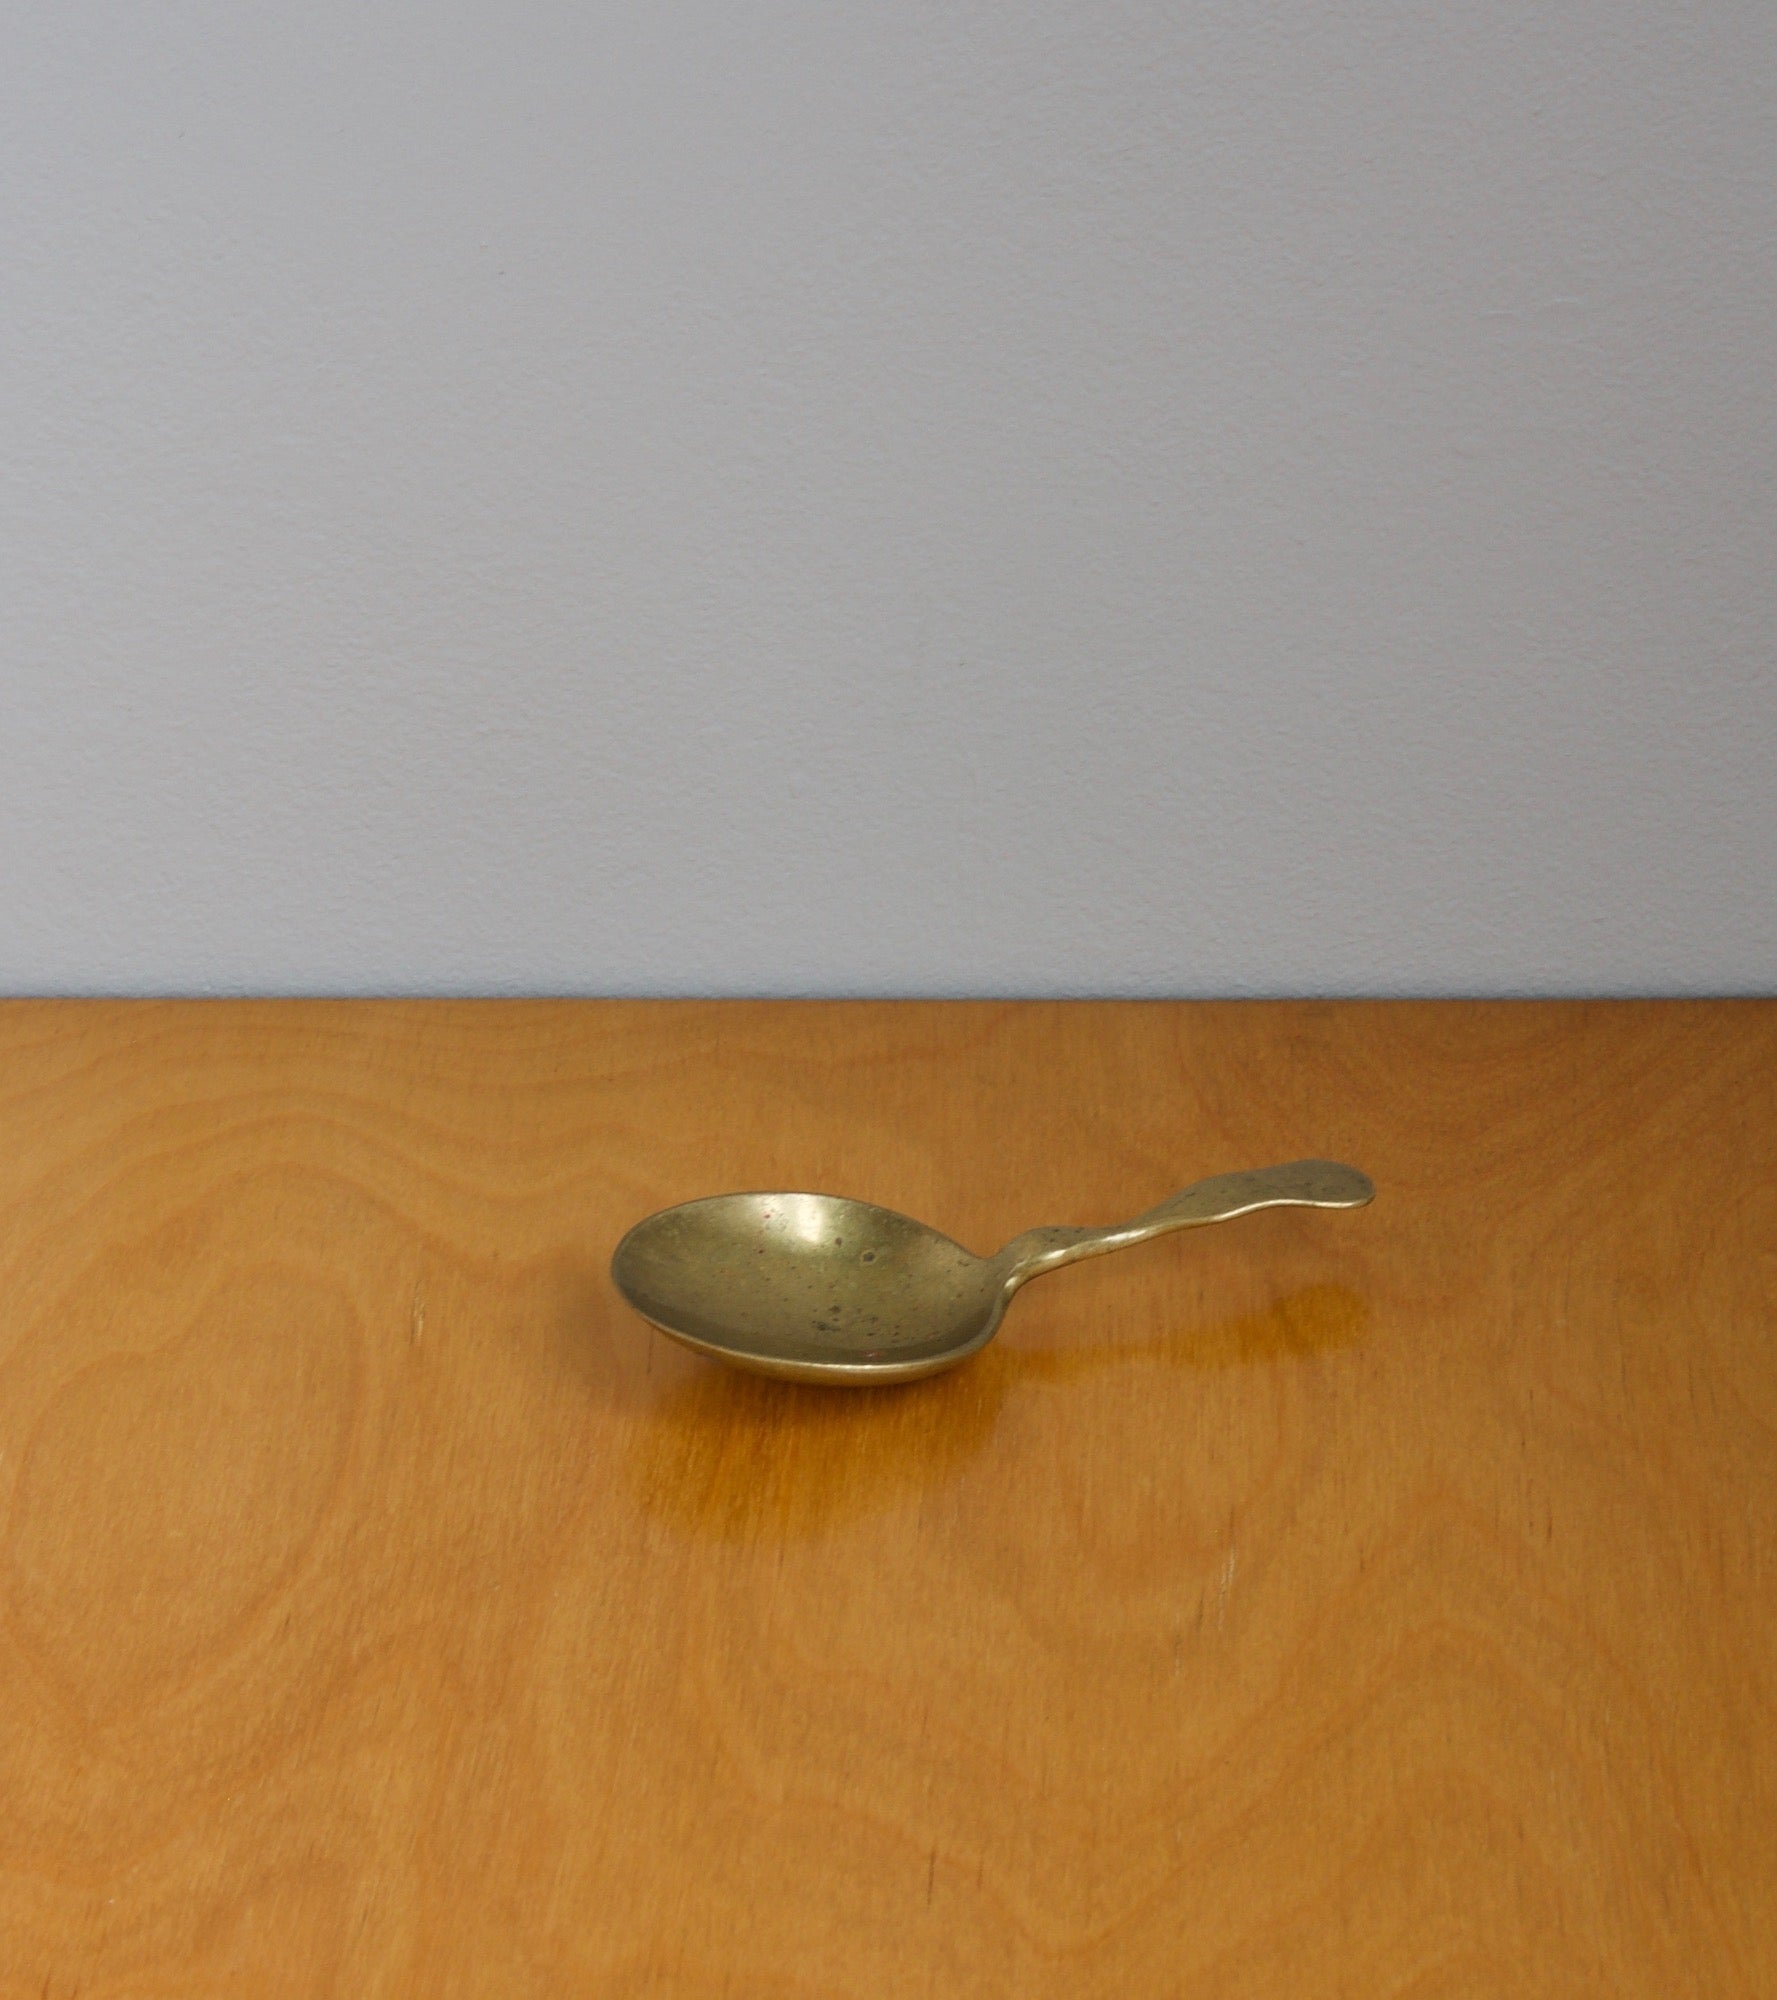 Sculptural Spoon #4565 Carl Auböck - Image 4